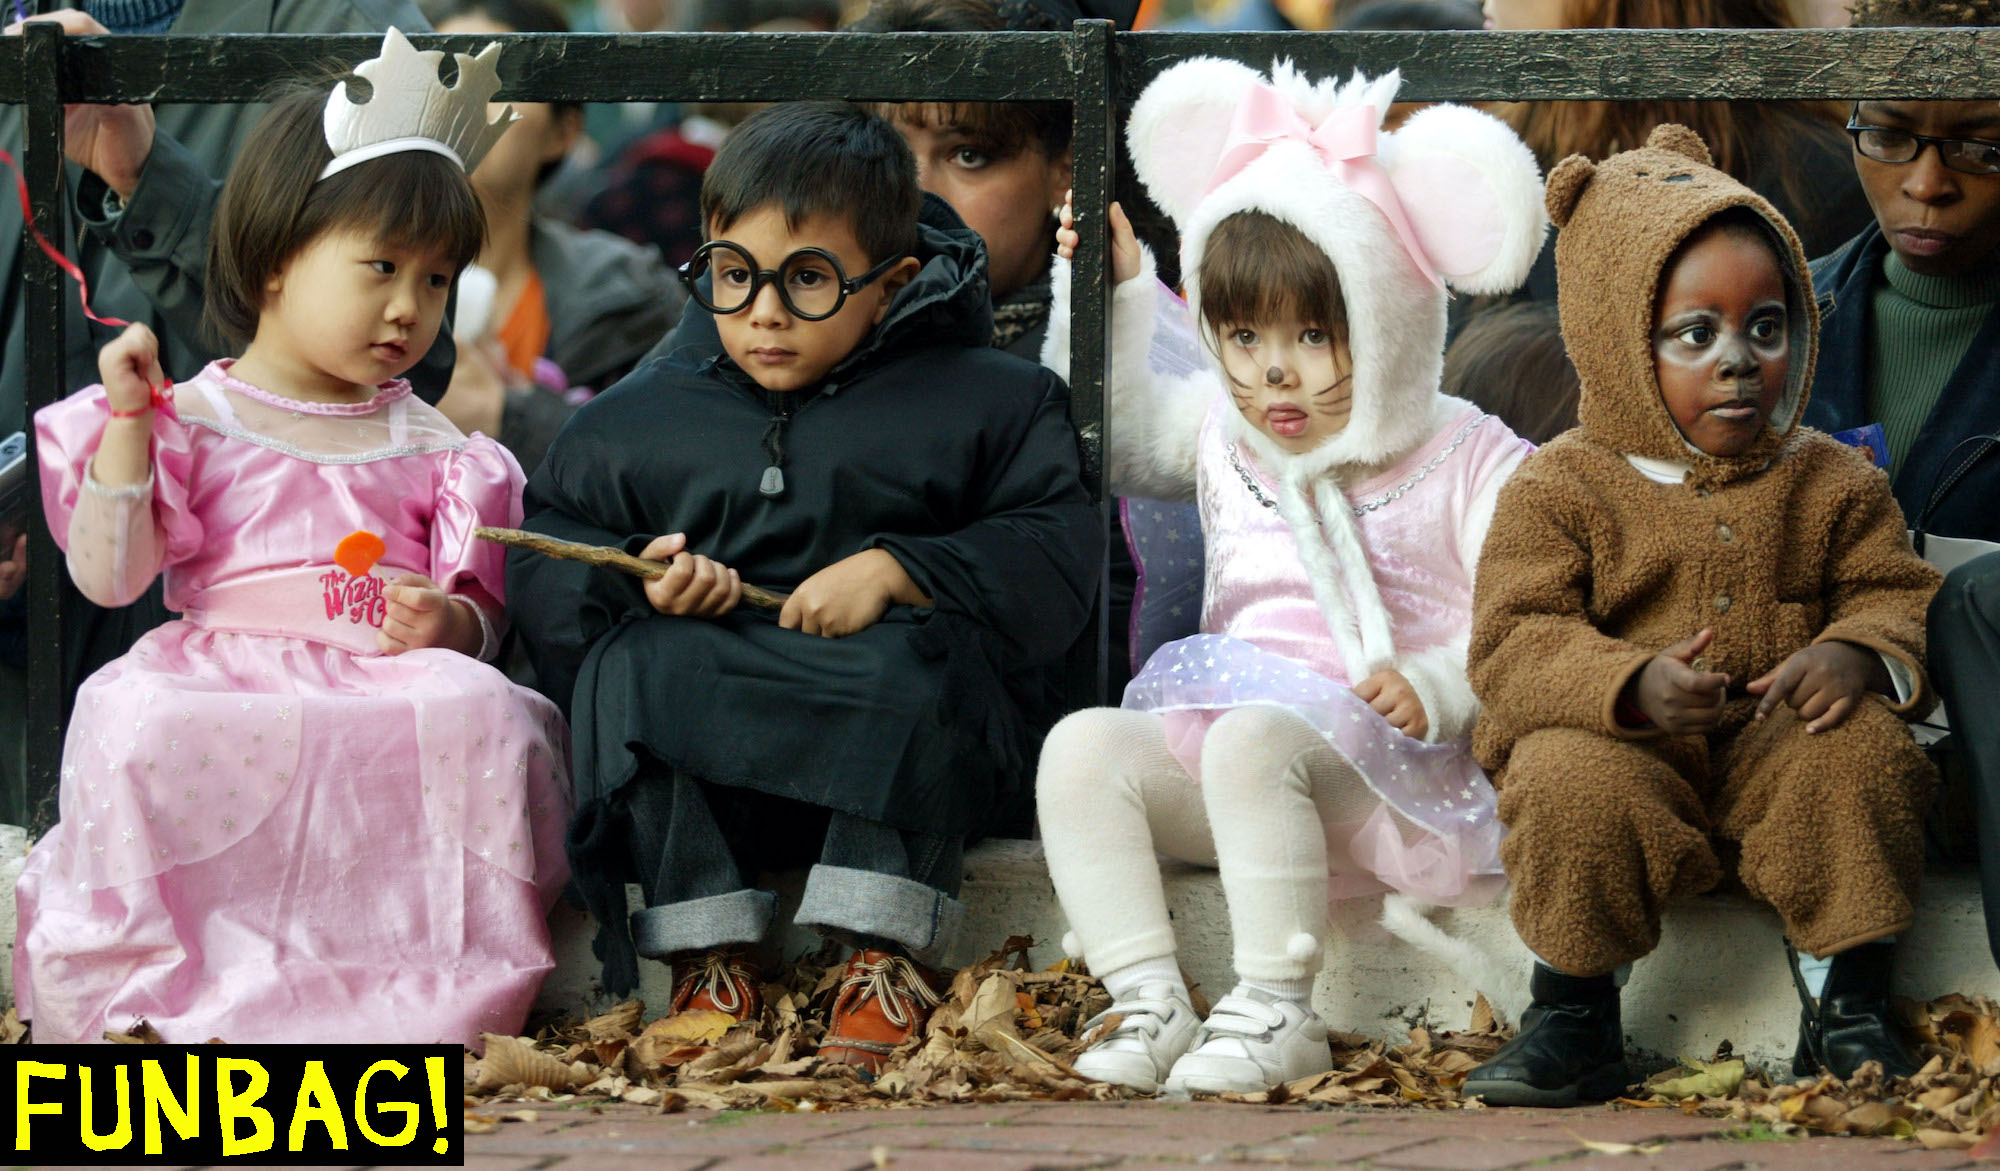 NEW YORK - OCTOBER 31: Children gather during the annual Children's Village Halloween Parade October 31, 2002 in New York City. The city will celebrate its annual Halloween parade for adults on Sixth Avenue this evening. (Photo by Mario Tama/Getty Images)